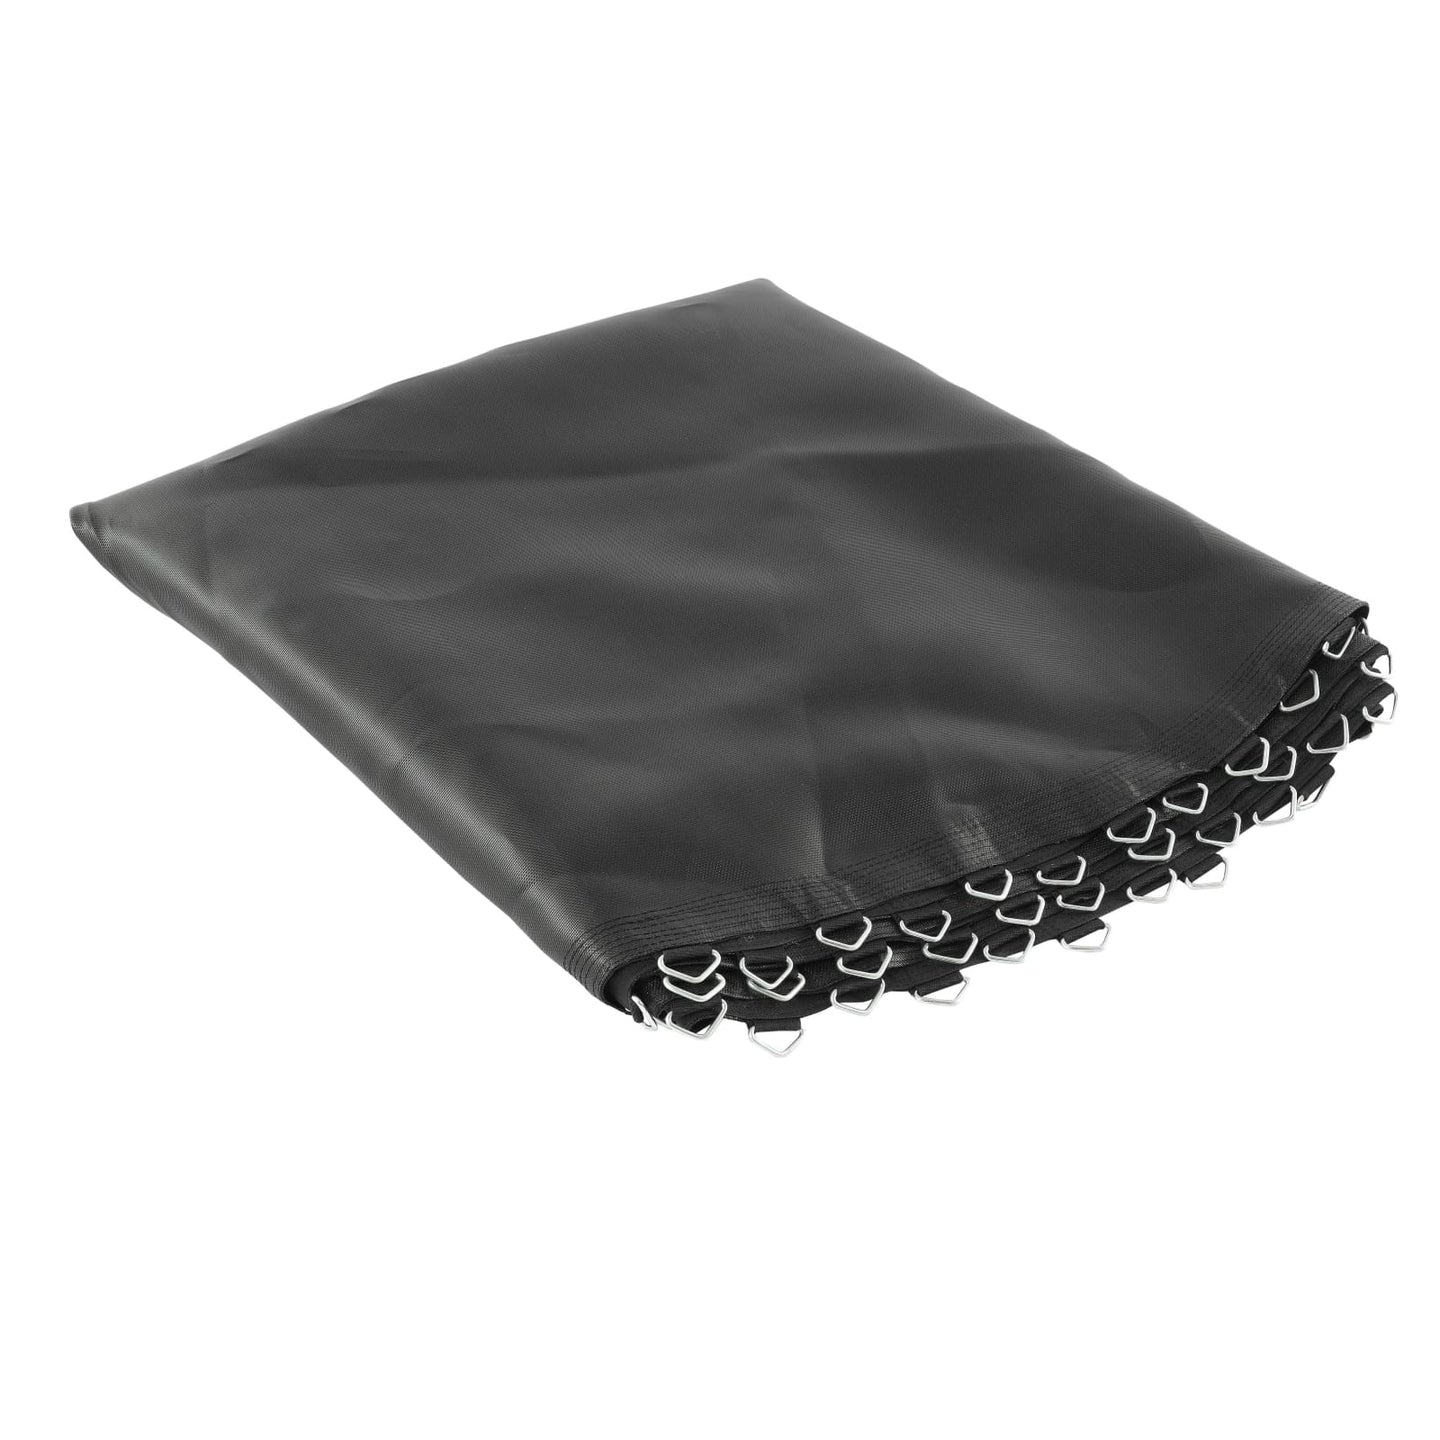 Upper Bounce Trampoline Replacement Jumping Mat Fits For 7.5 Ft. Round Frames W/ 42 V-Rings 5.5 Springs - Trampoline Replacements